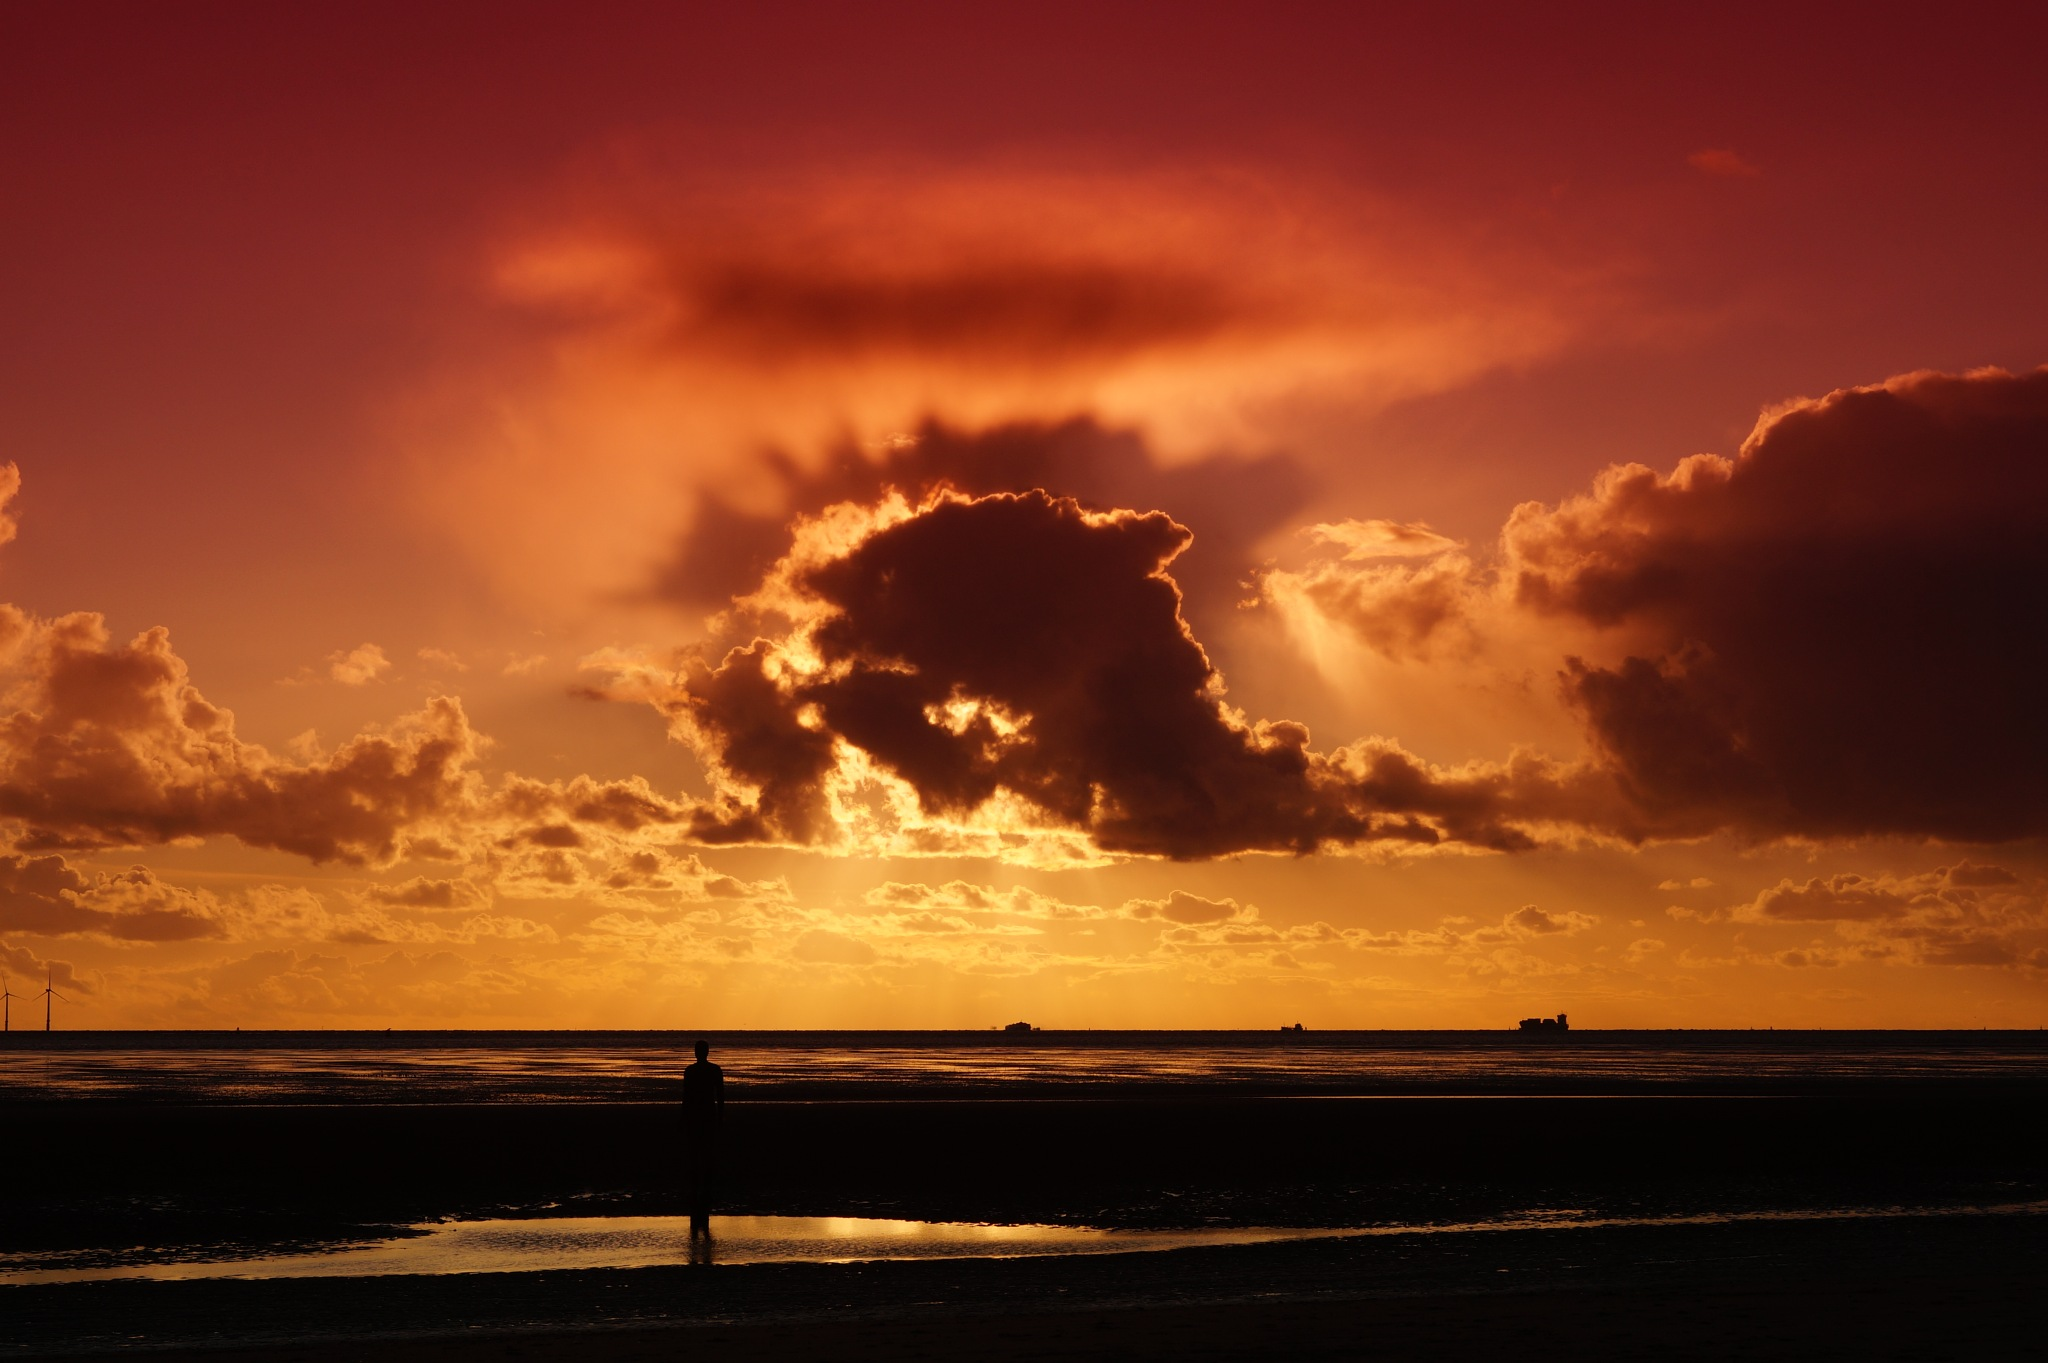 Waterloo sunset with dolphin cloud by Steve Smith